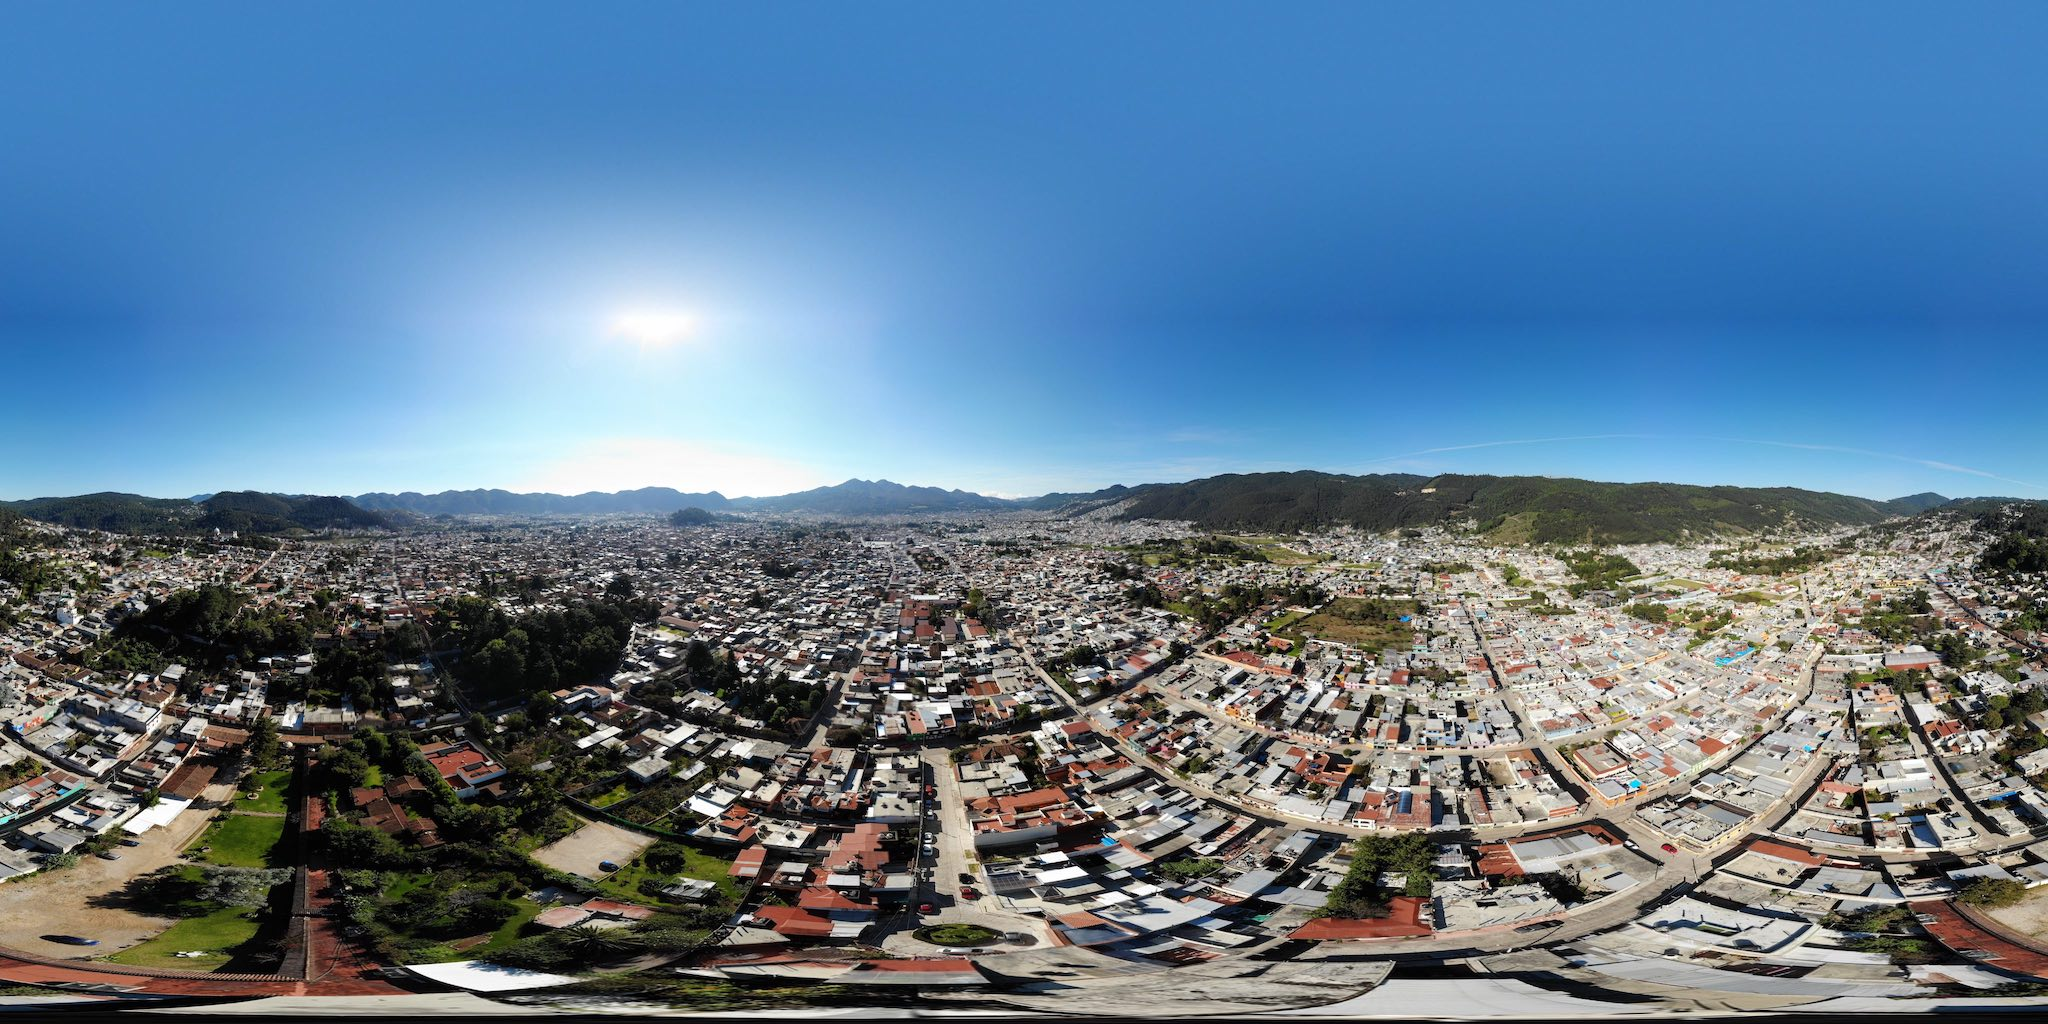 Ariel 360 photo of a city